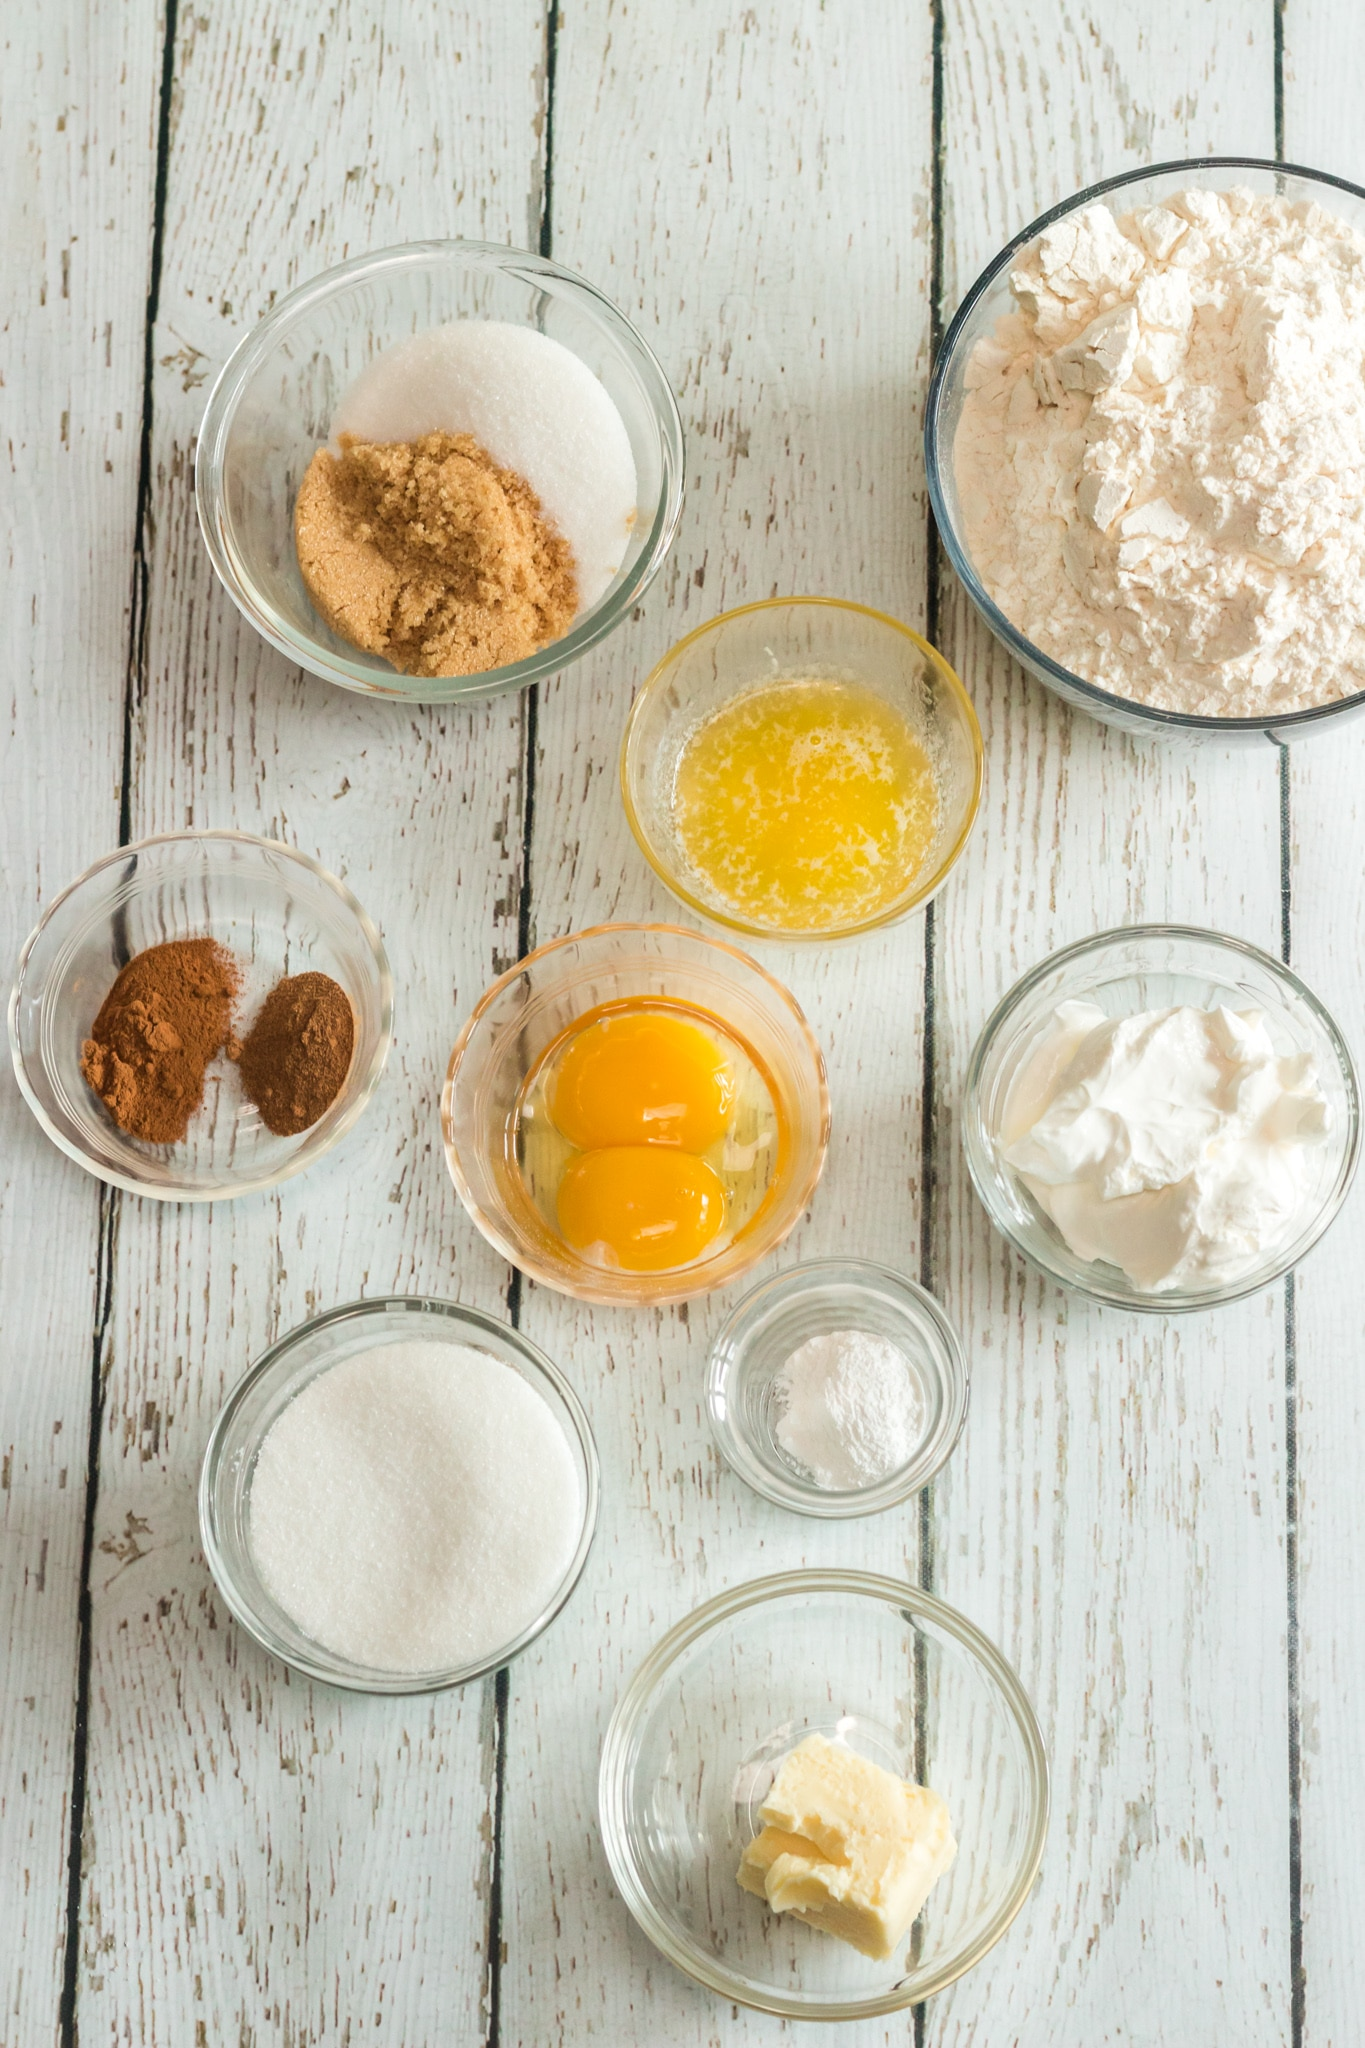 Air Fyrer Pumpkin Spice Donuts Ingredients. Fill your home with the smell of freshly made Air Fryer Pumpkin Spice Donuts, perfect for this beautiful fall weather we are having. These easy to make Pumpkin Spice Donuts have a crisp outer coating yet they so soft fluffy inside, enjoy them with a healthy coating of cinnamon sugar, or your favorite glaze.